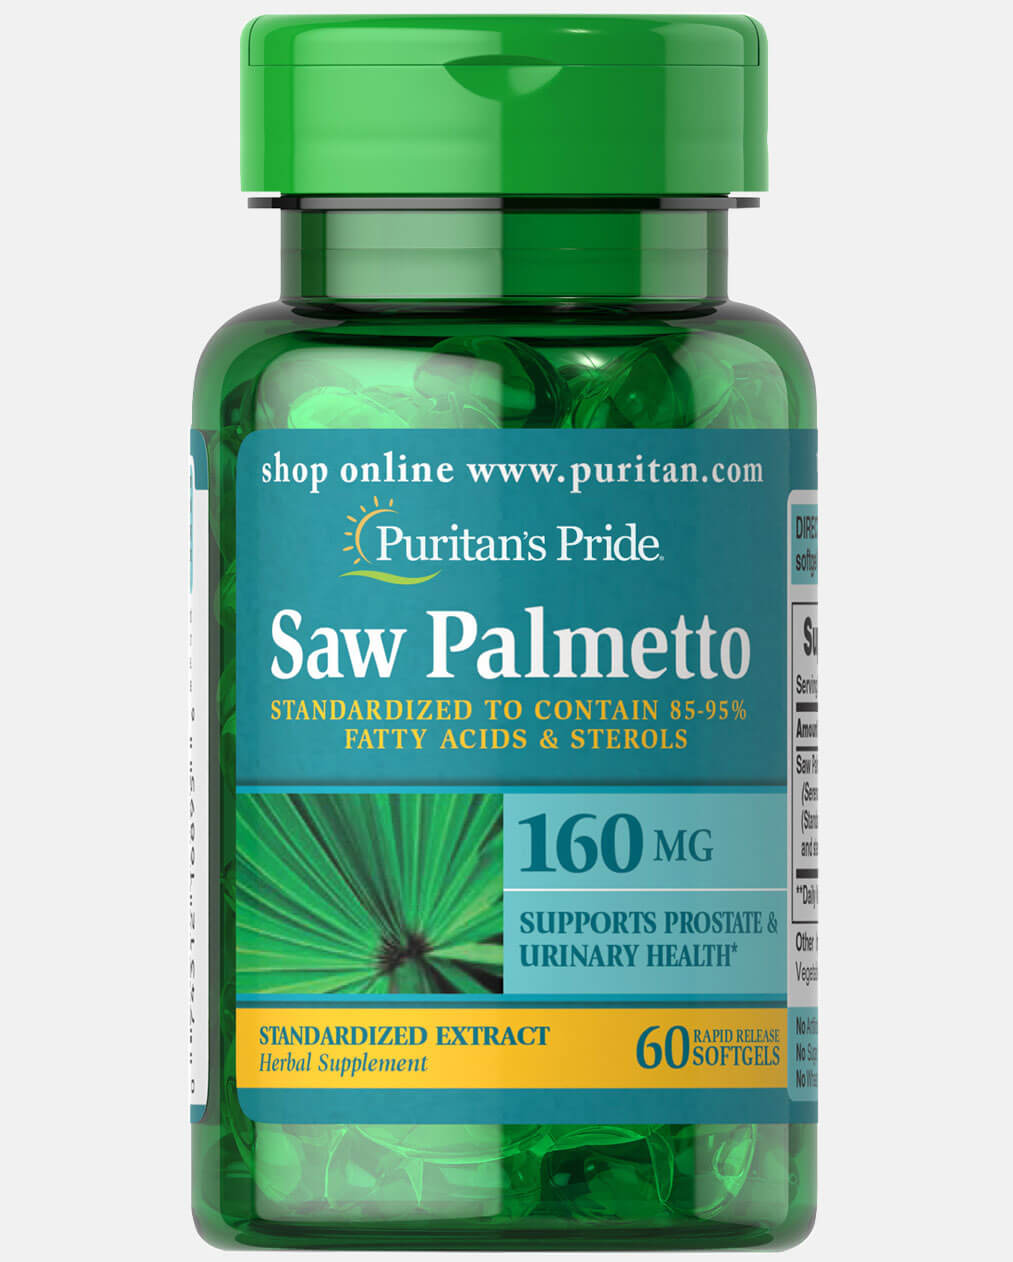 Saw Palmetto Standardized Extract 160 mg